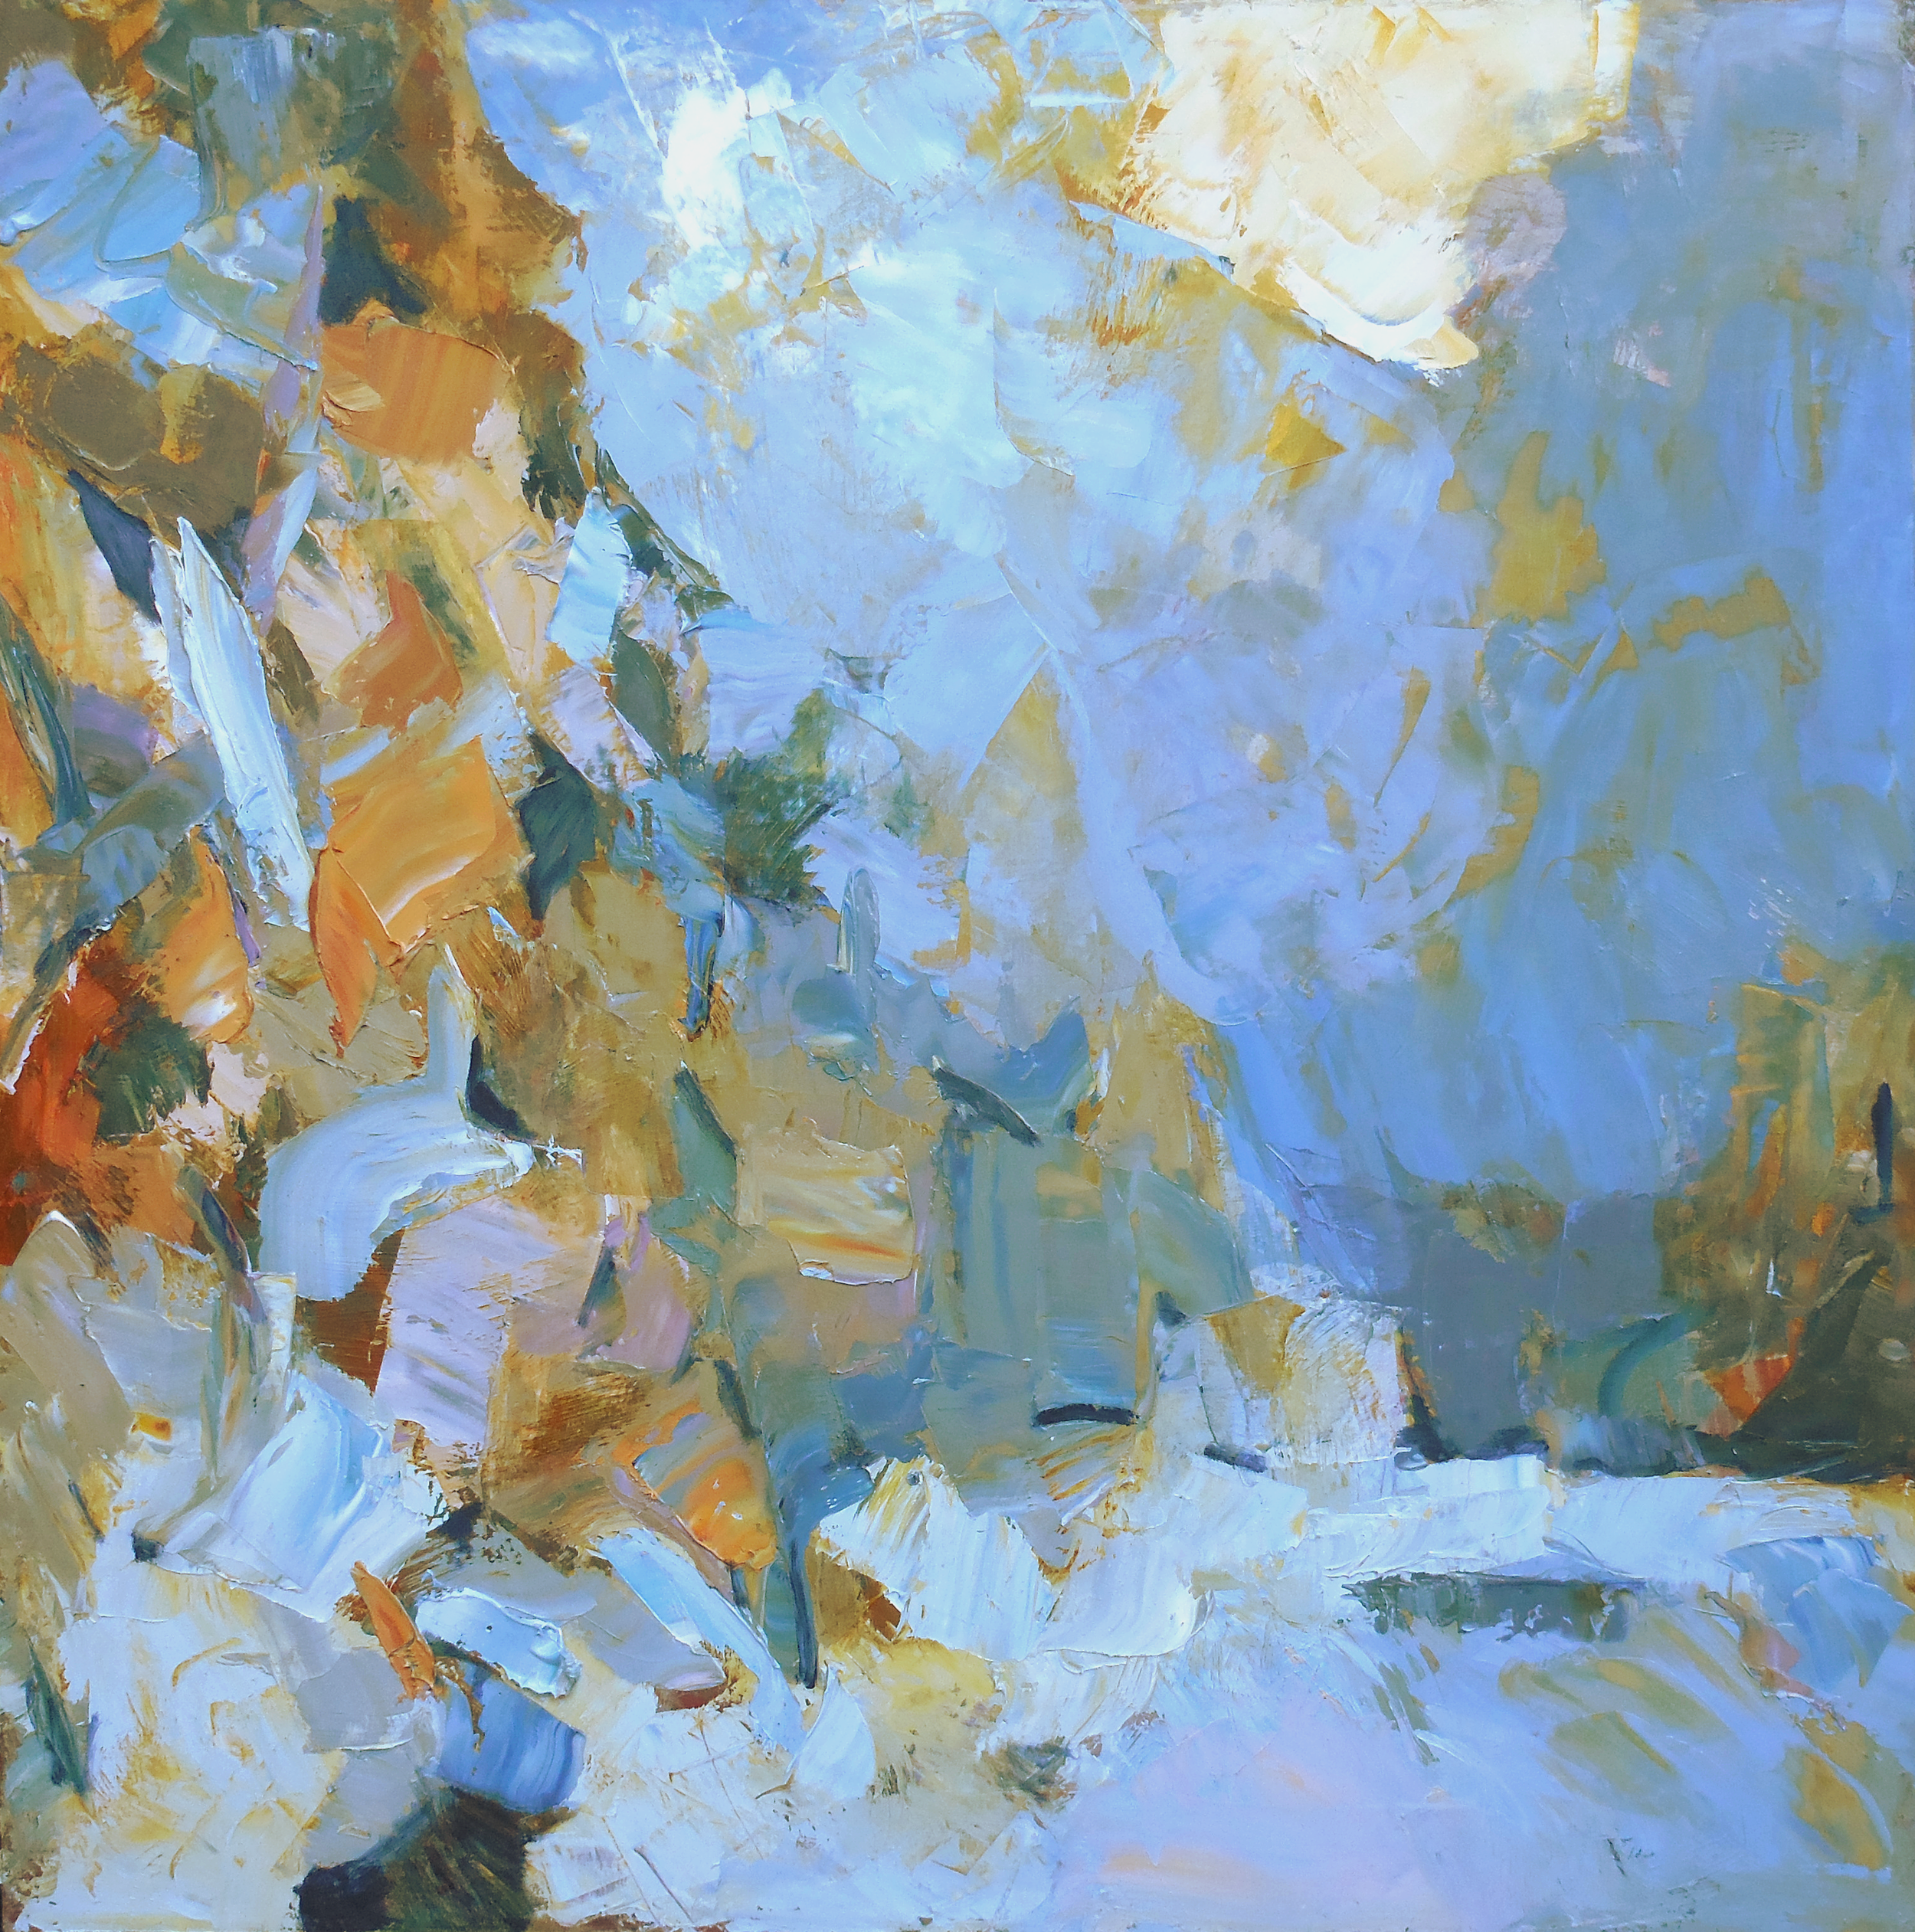 "Snoqualmie , 2015 Oil on canvas, 30"" x 30"" Sold"